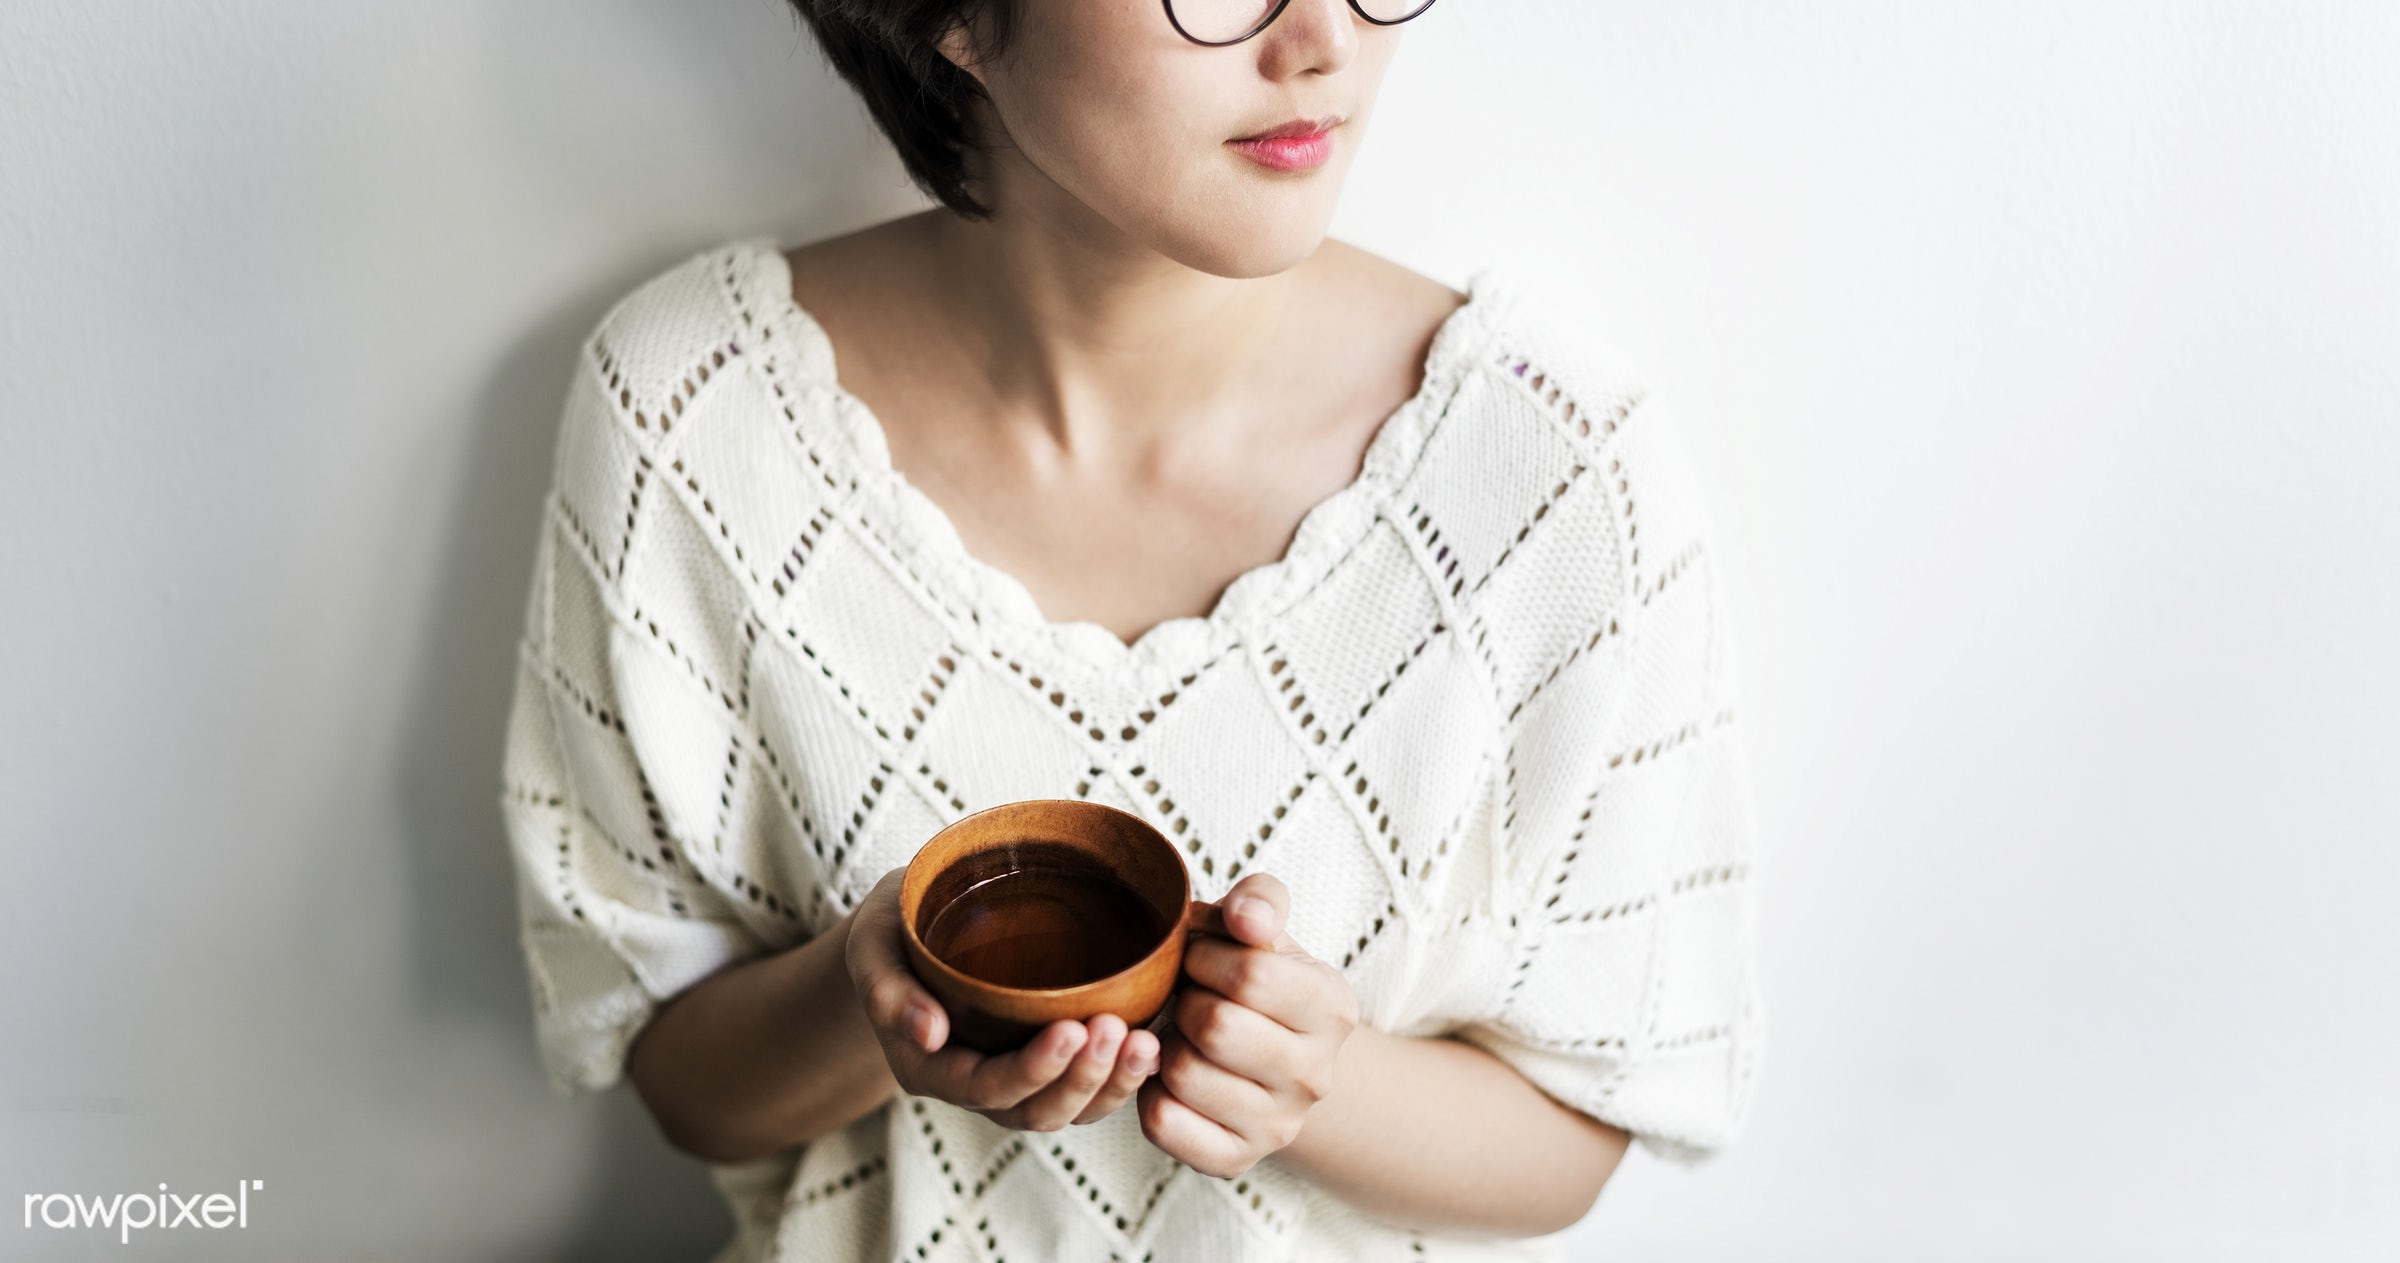 adult, aroma, asian, attractive, beautiful, beauty, beverage, break, breakfast, brunette, business, cafe, cafeteria, coffee...